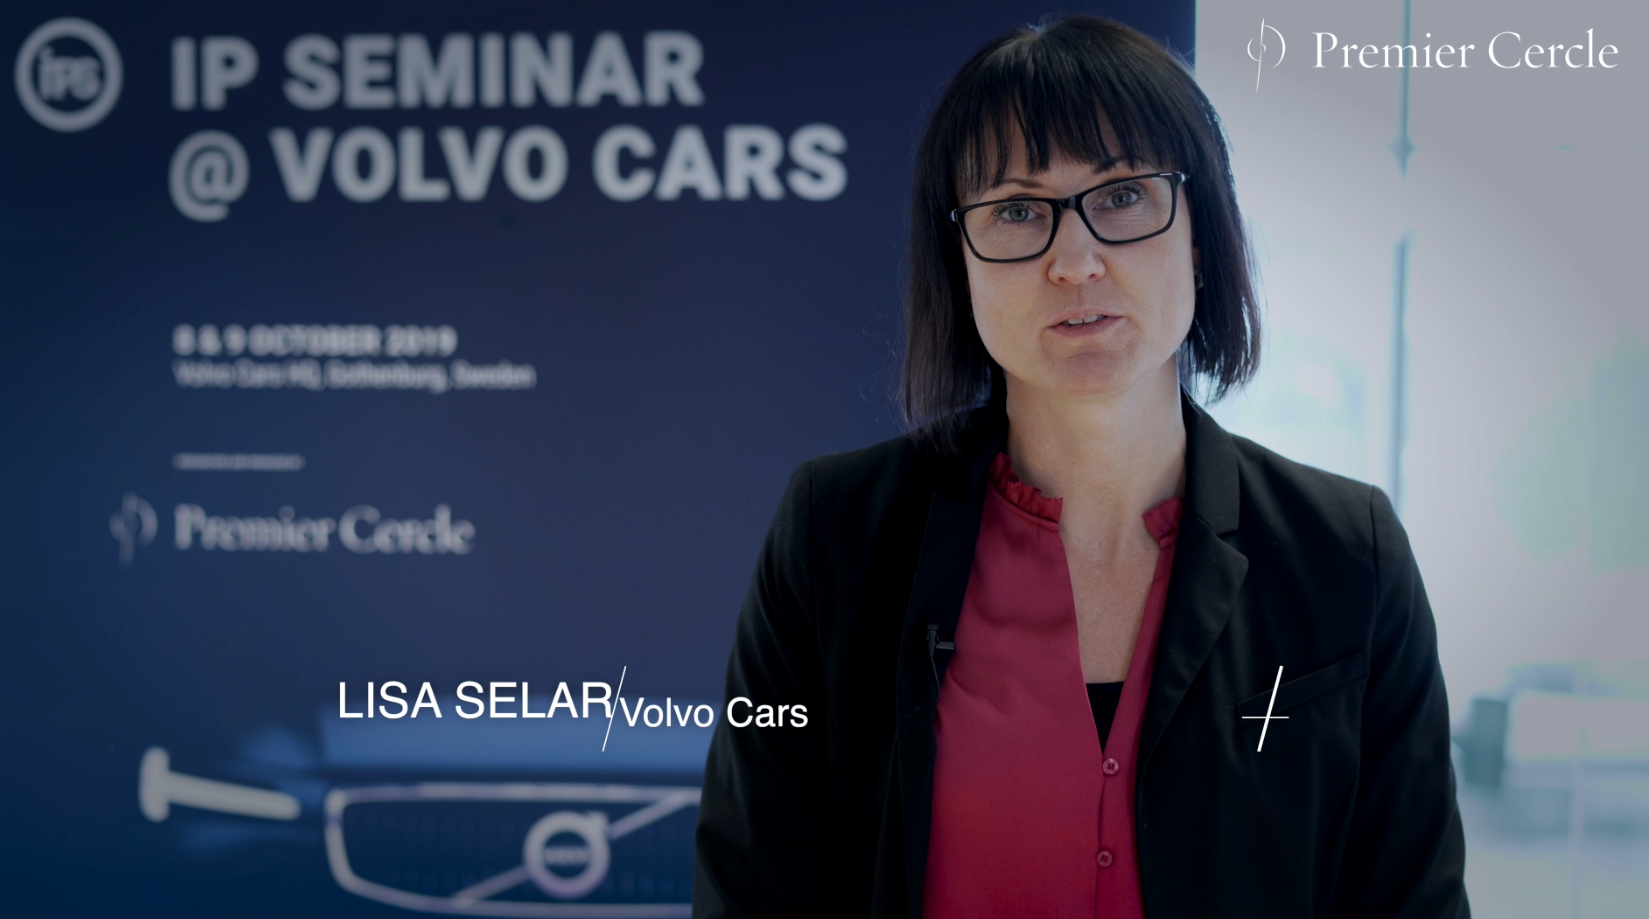 Lisa Selar, Senior Trademark and Design Counsel at Volvo Cars interviewed by Premier Cercle